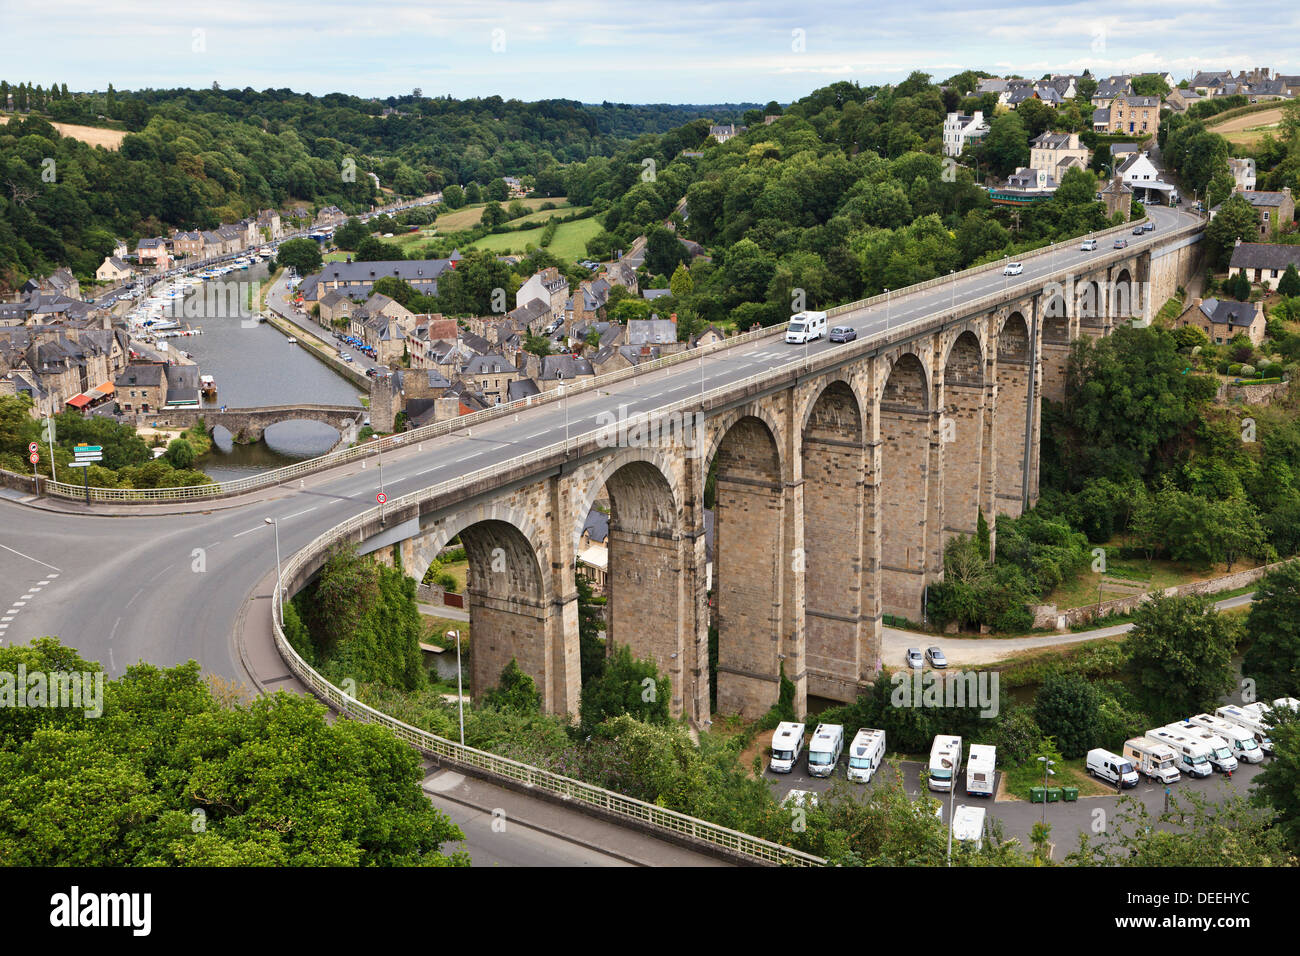 A motorhome crosses the viaduct above the Old Port and River Rance at Dinan, Côtes-d'Armor, Brittany, France Stock Photo